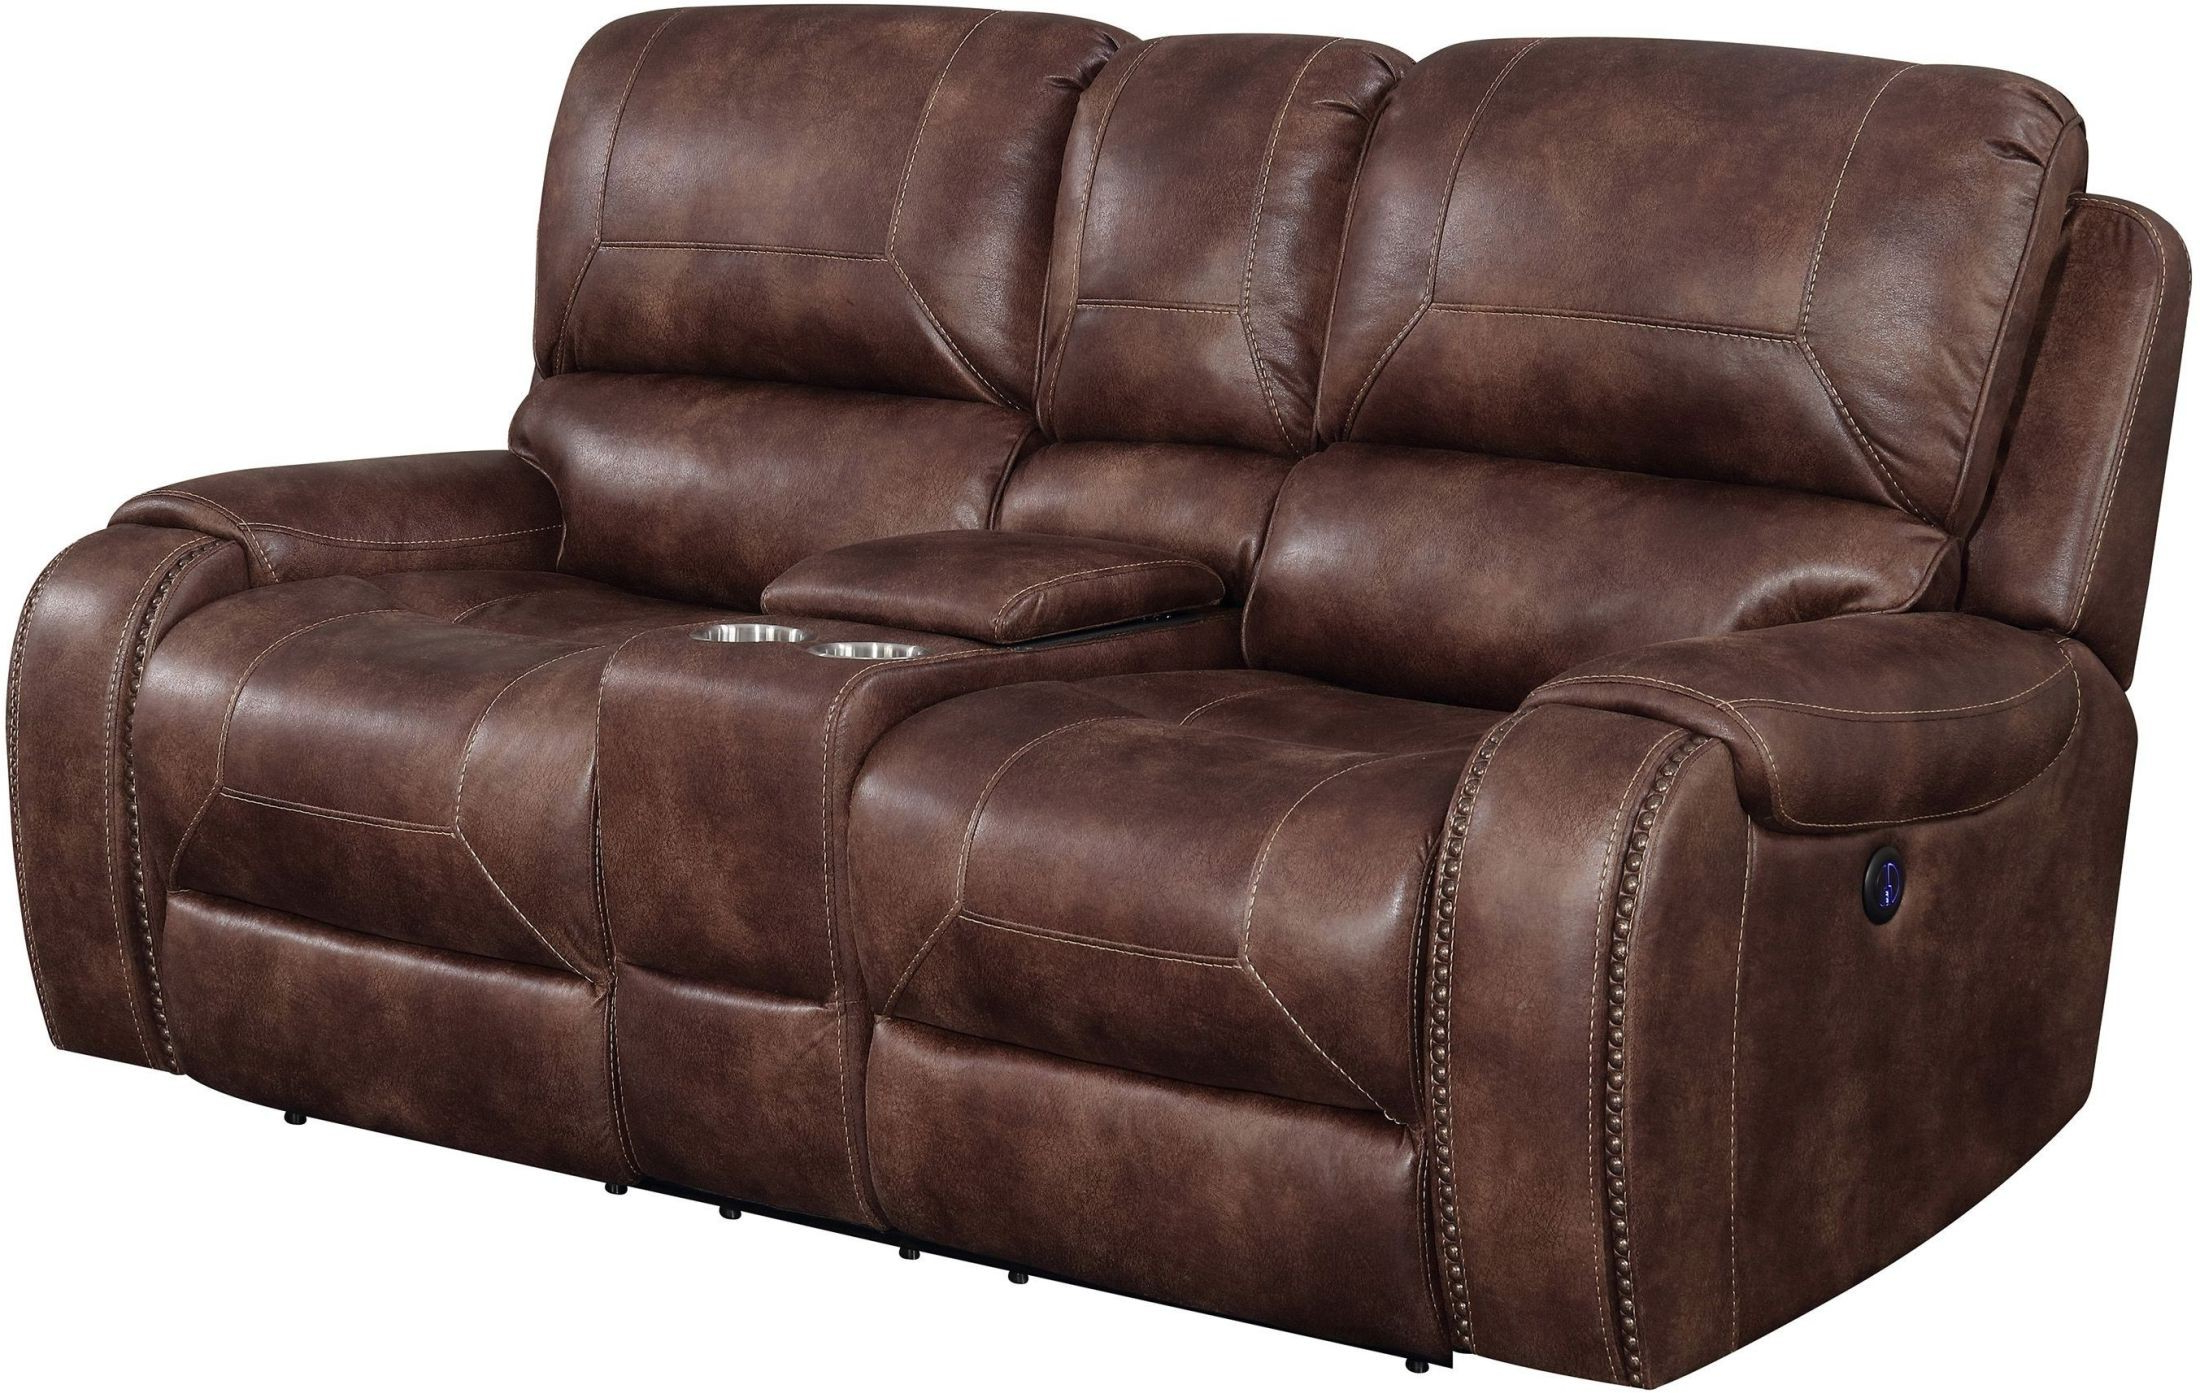 Jennings Waylon Mocha Power Reclining Console Loveseat From Prime With Most Current Waylon 3 Piece Power Reclining Sectionals (View 19 of 20)